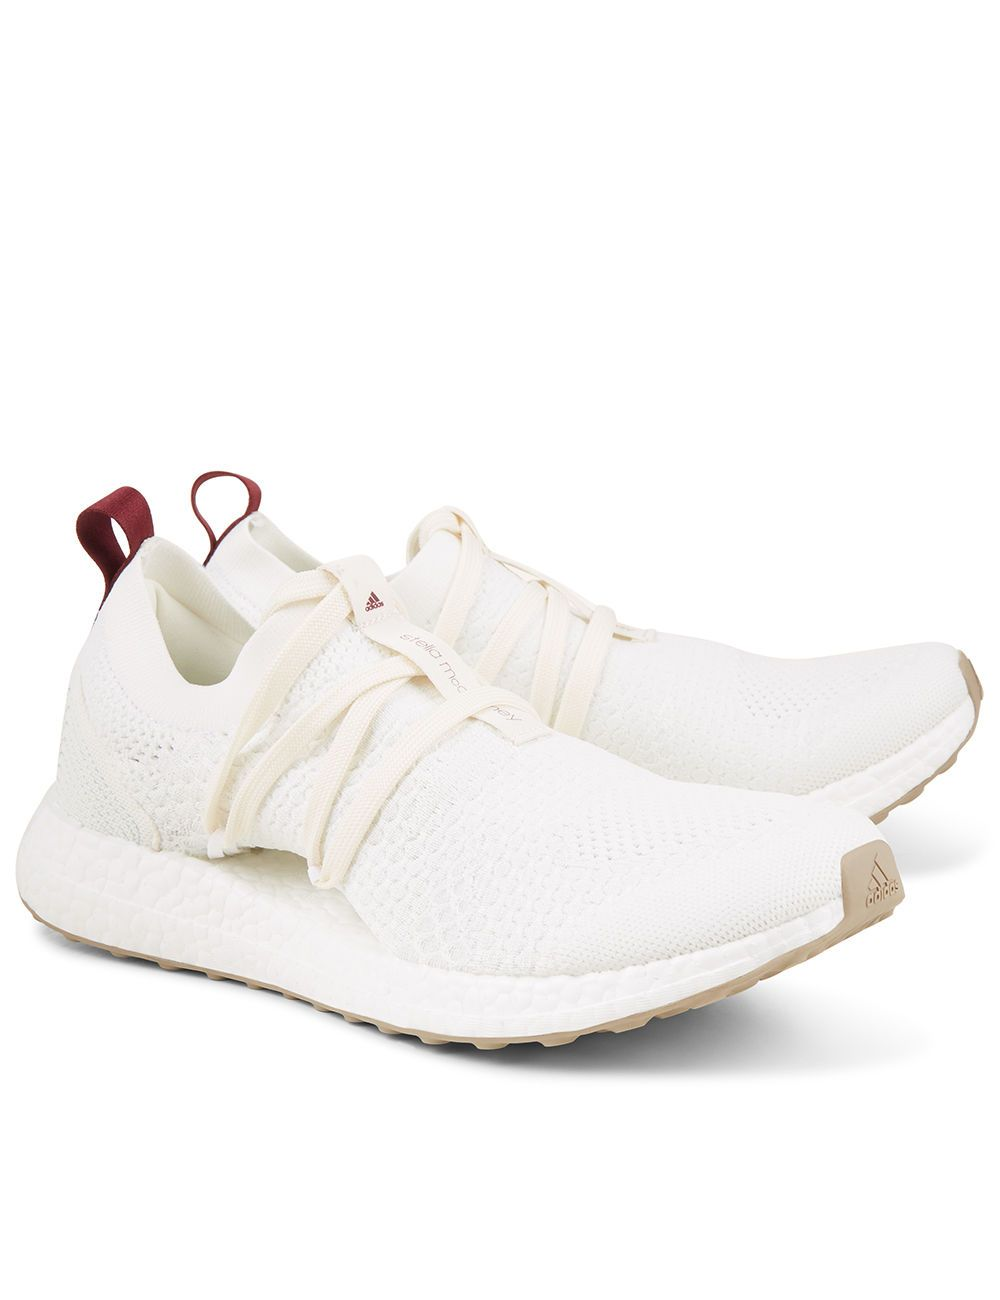 ef6887fc3 ADIDAS BY STELLA MCCARTNEY Off White Ultra Boost X Trainers.   adidasbystellamccartney  shoes  trainers